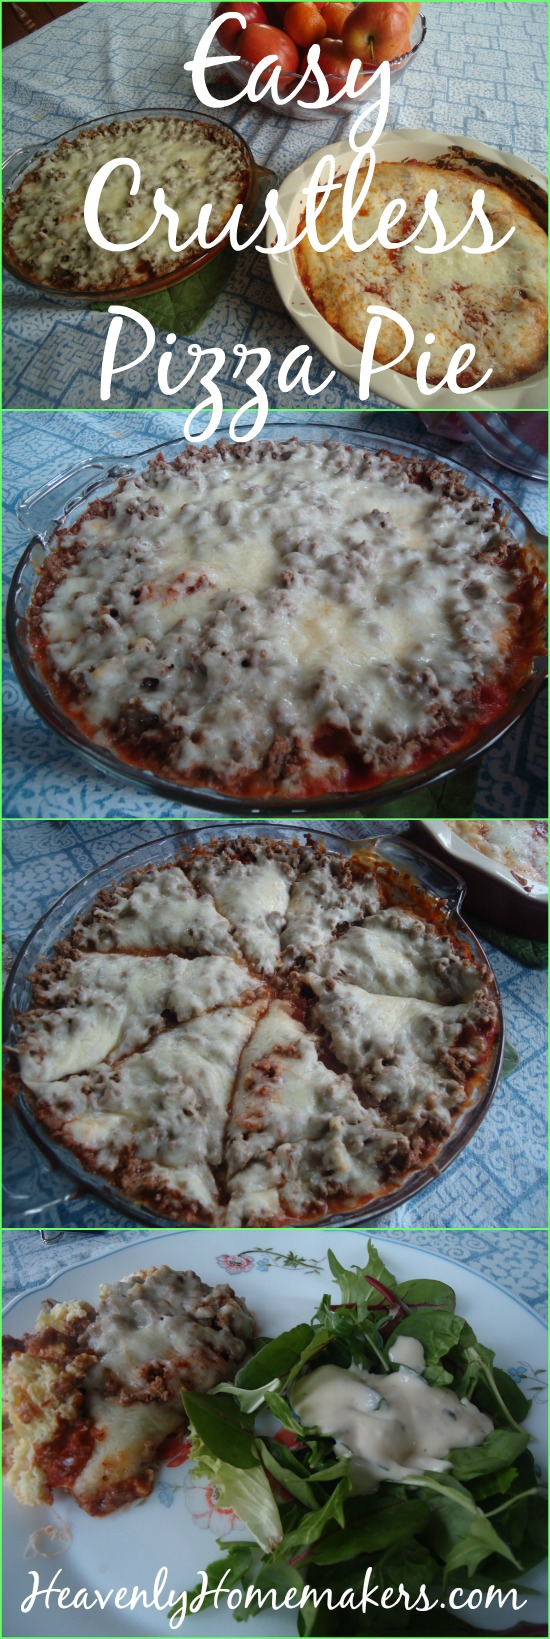 Easy Crustless Pizza Pie